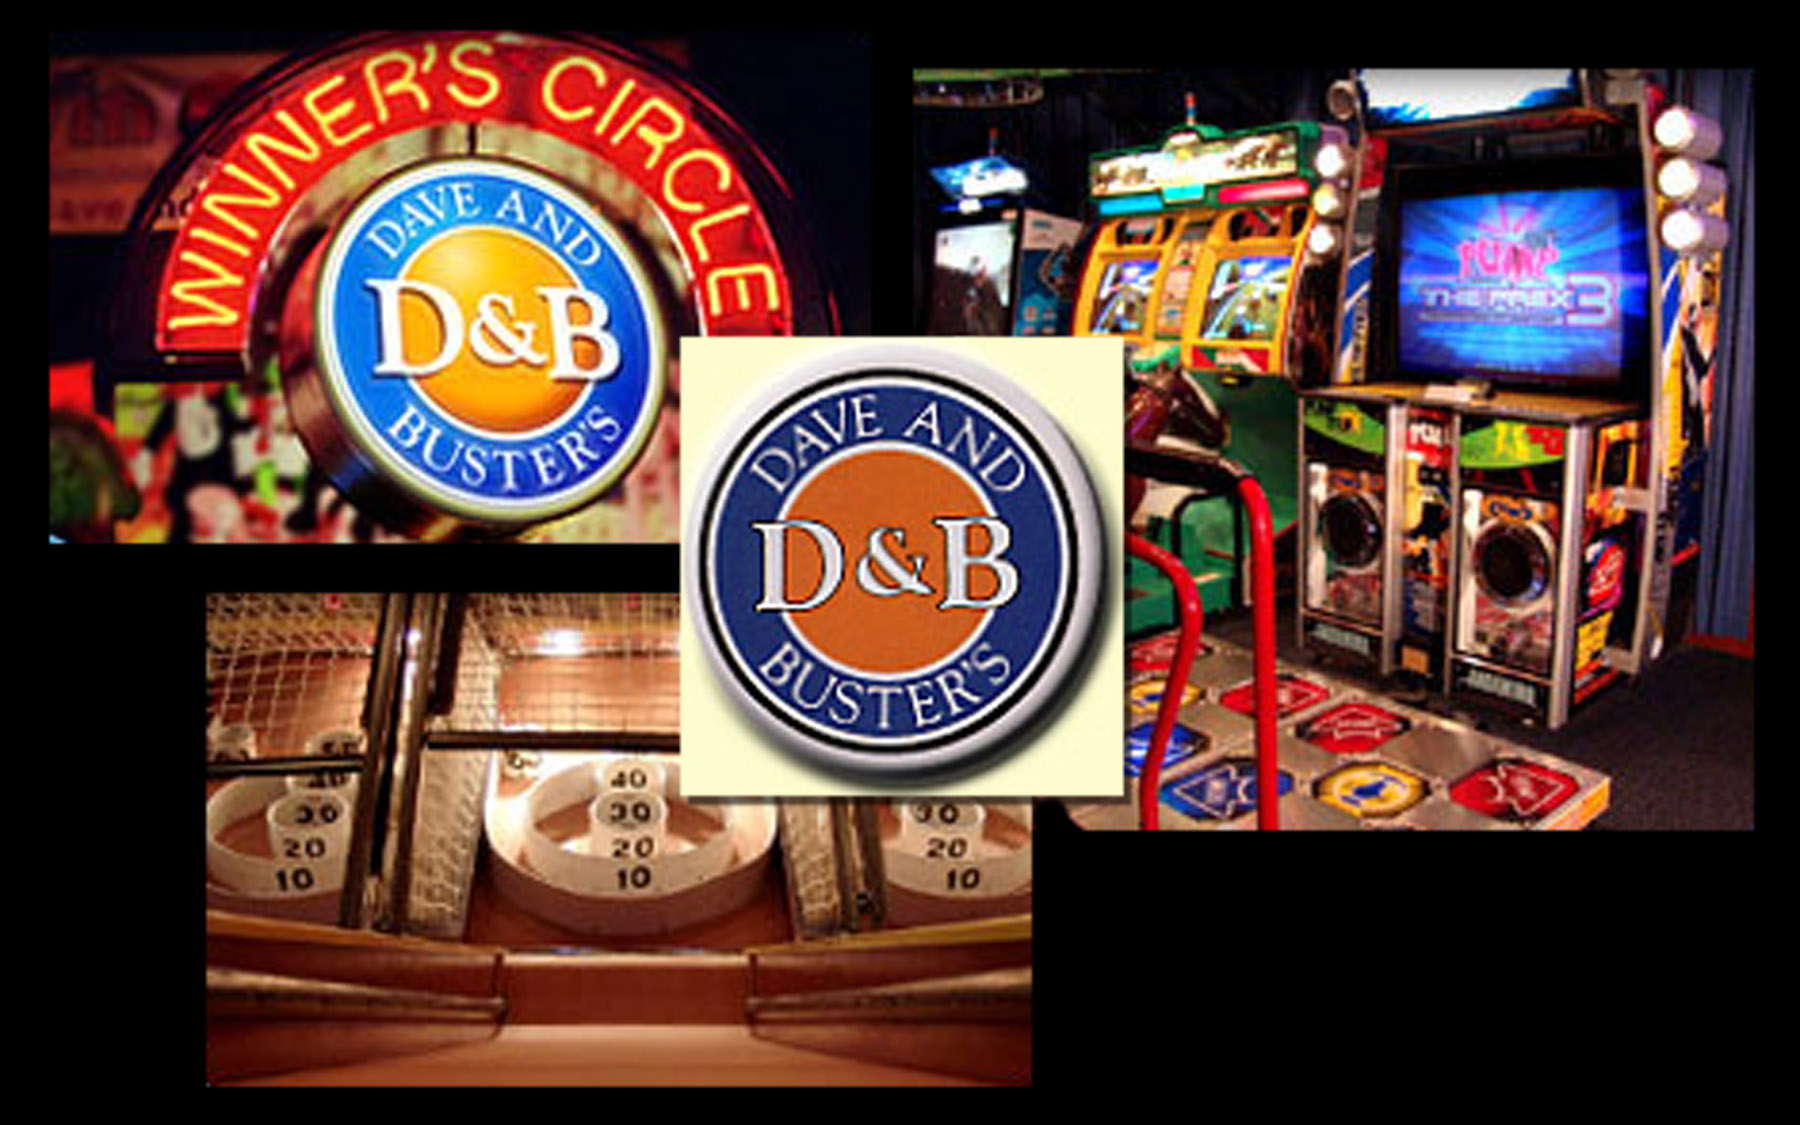 Dave & Buster's in Greenville, SC